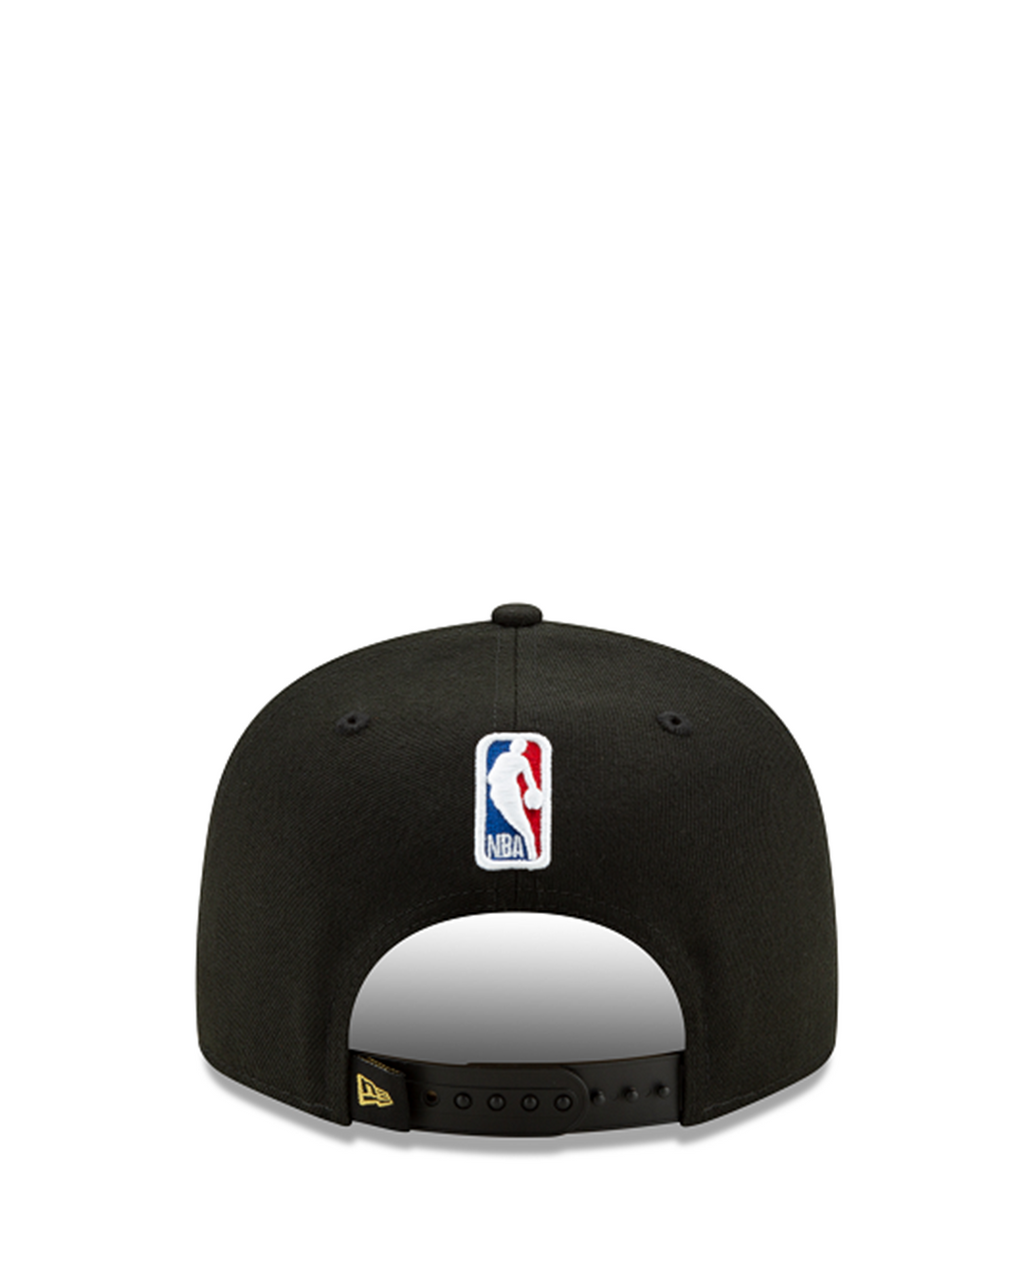 Los Angeles Lakers 2020 NBA Champions Locker Room 9FIFTY Snapback Cap